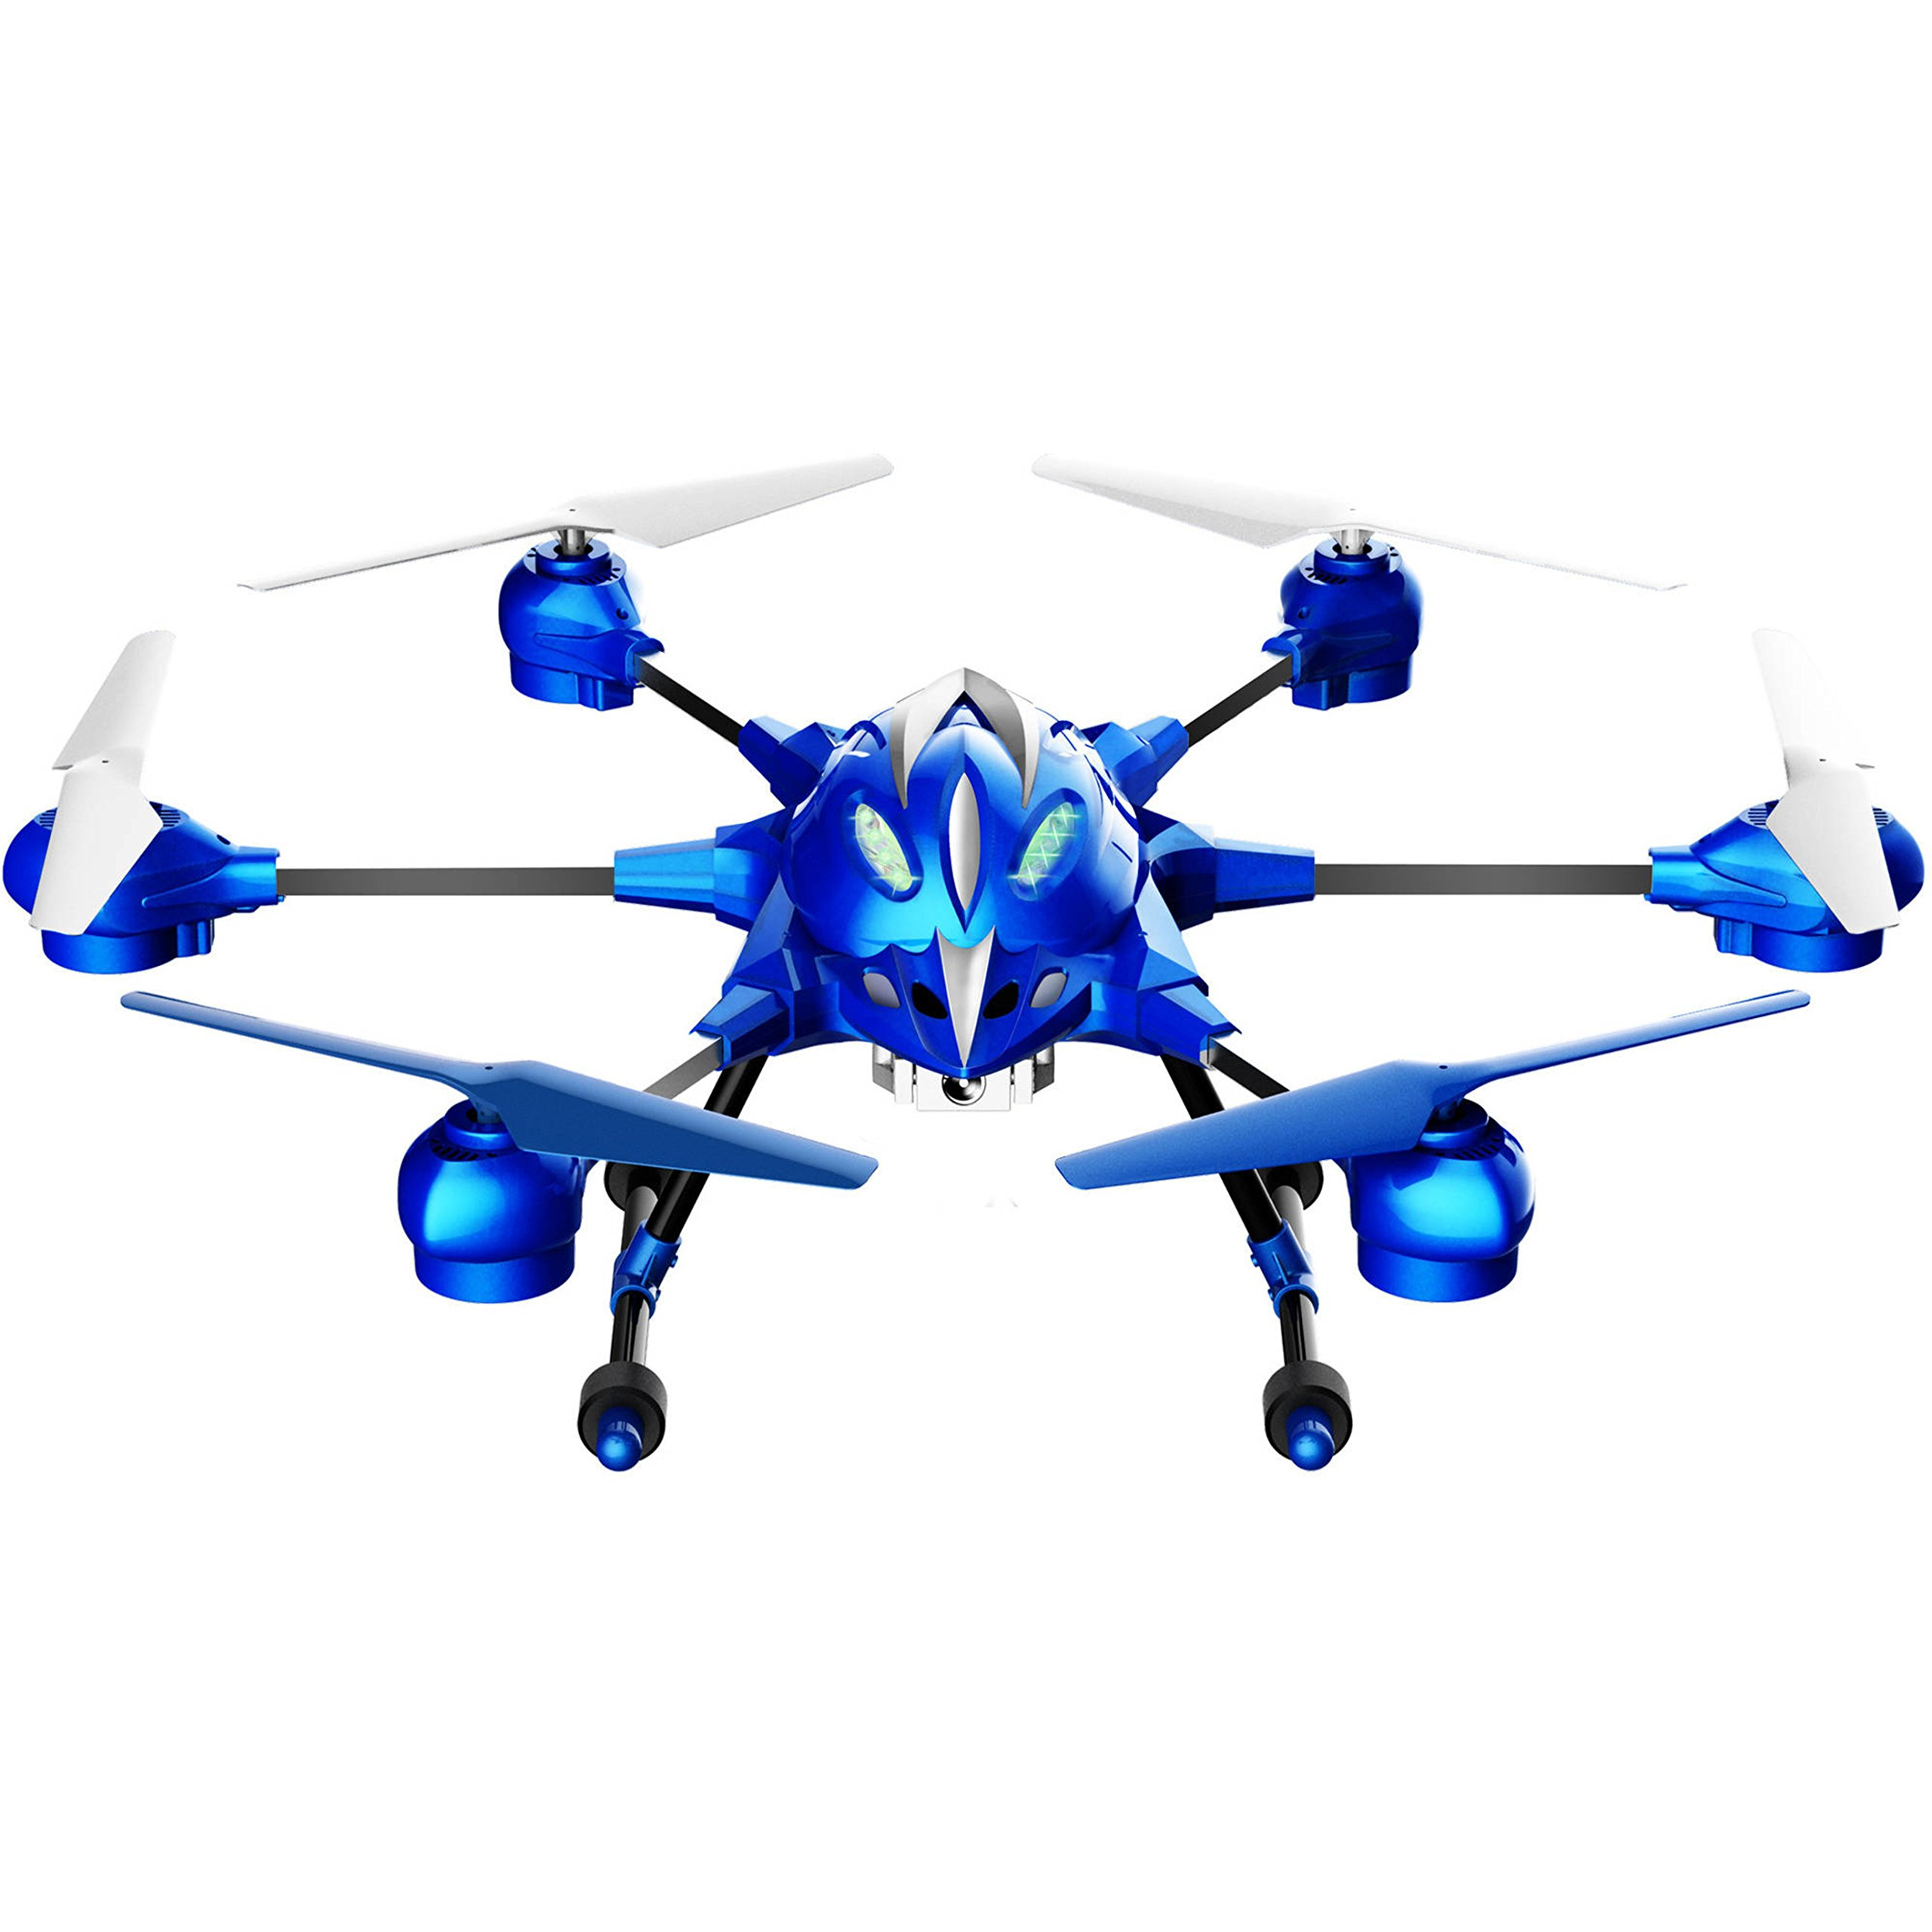 Pathfinder 2 Megapixel Resolution Camera Hexacopter WiFi Blue Drone by Riviera Hexacopter Drone